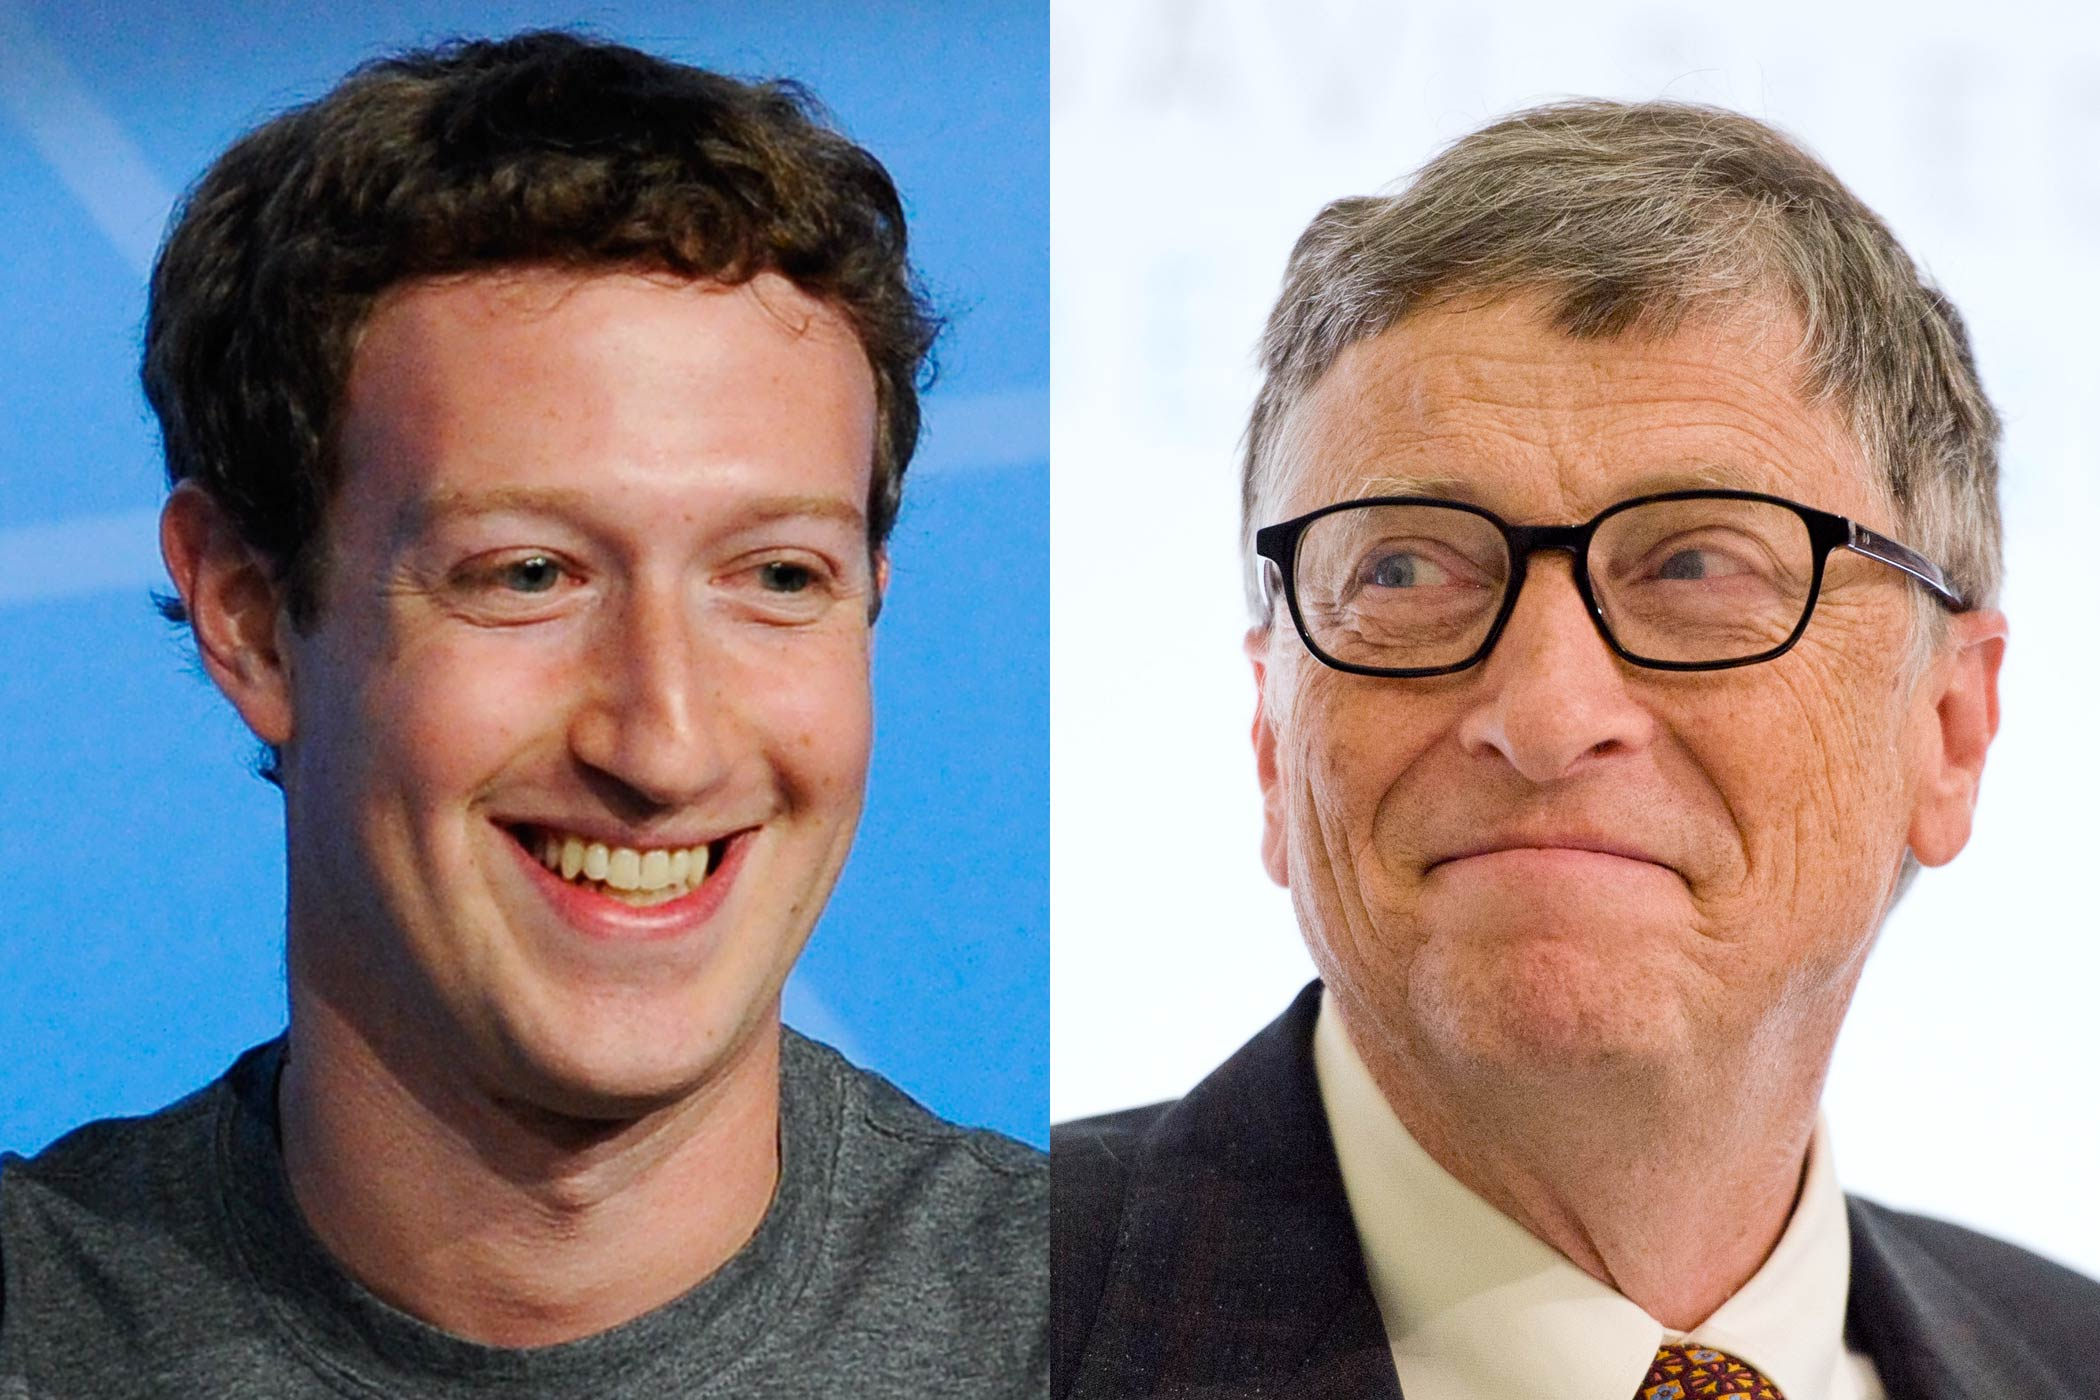 From left: Mark Zuckerberg and Bill Gates